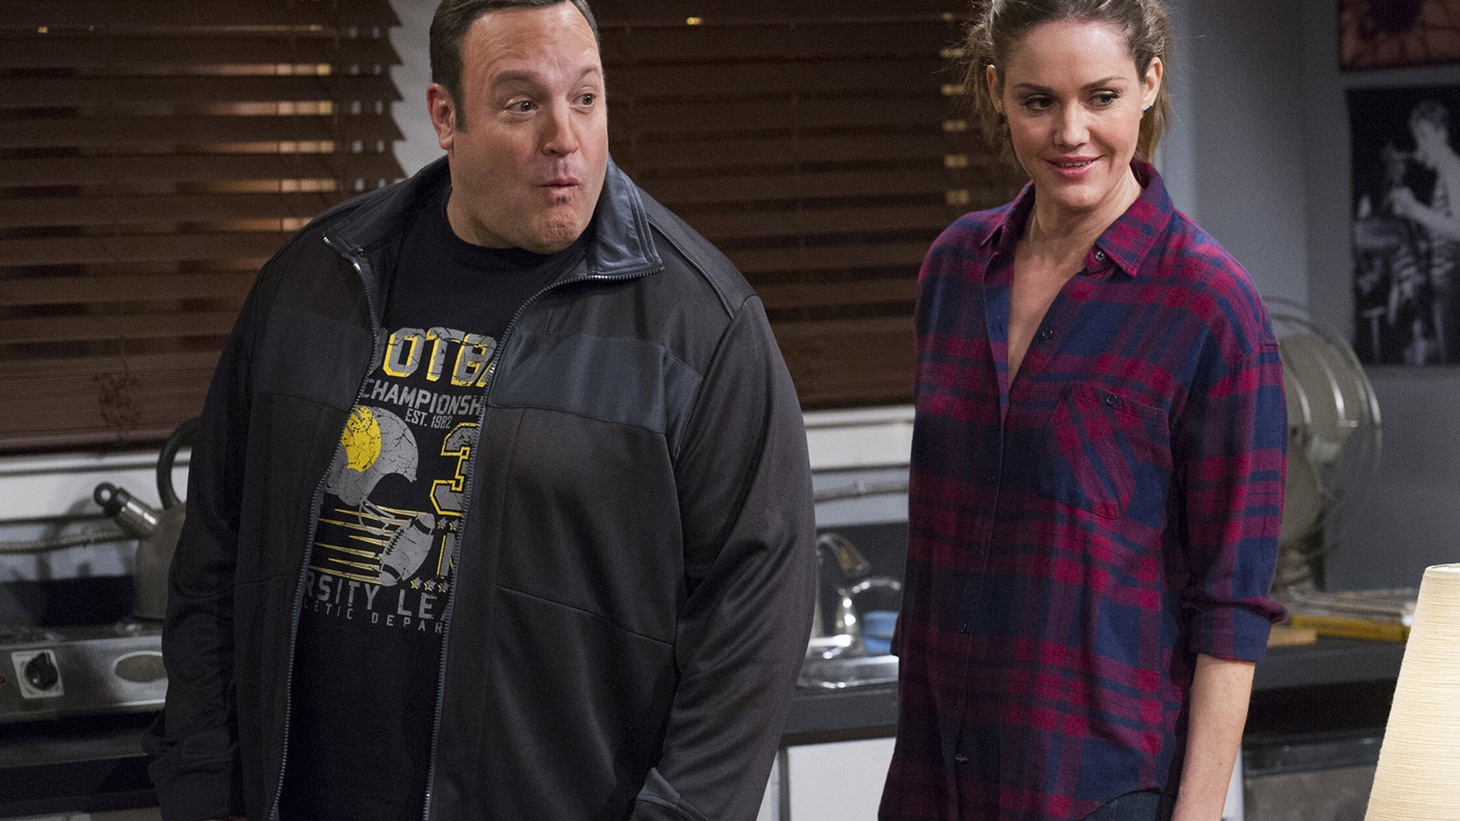 TV writer-producer Rob Long was brought in on short notice to run the faltering CBS sitcom Kevin Can Wait. Long talks about getting the sitcom back on track, why he hopes there's not a writers' strike, and what itPs like to be one of the few outspoken conservatives in Hollywood.